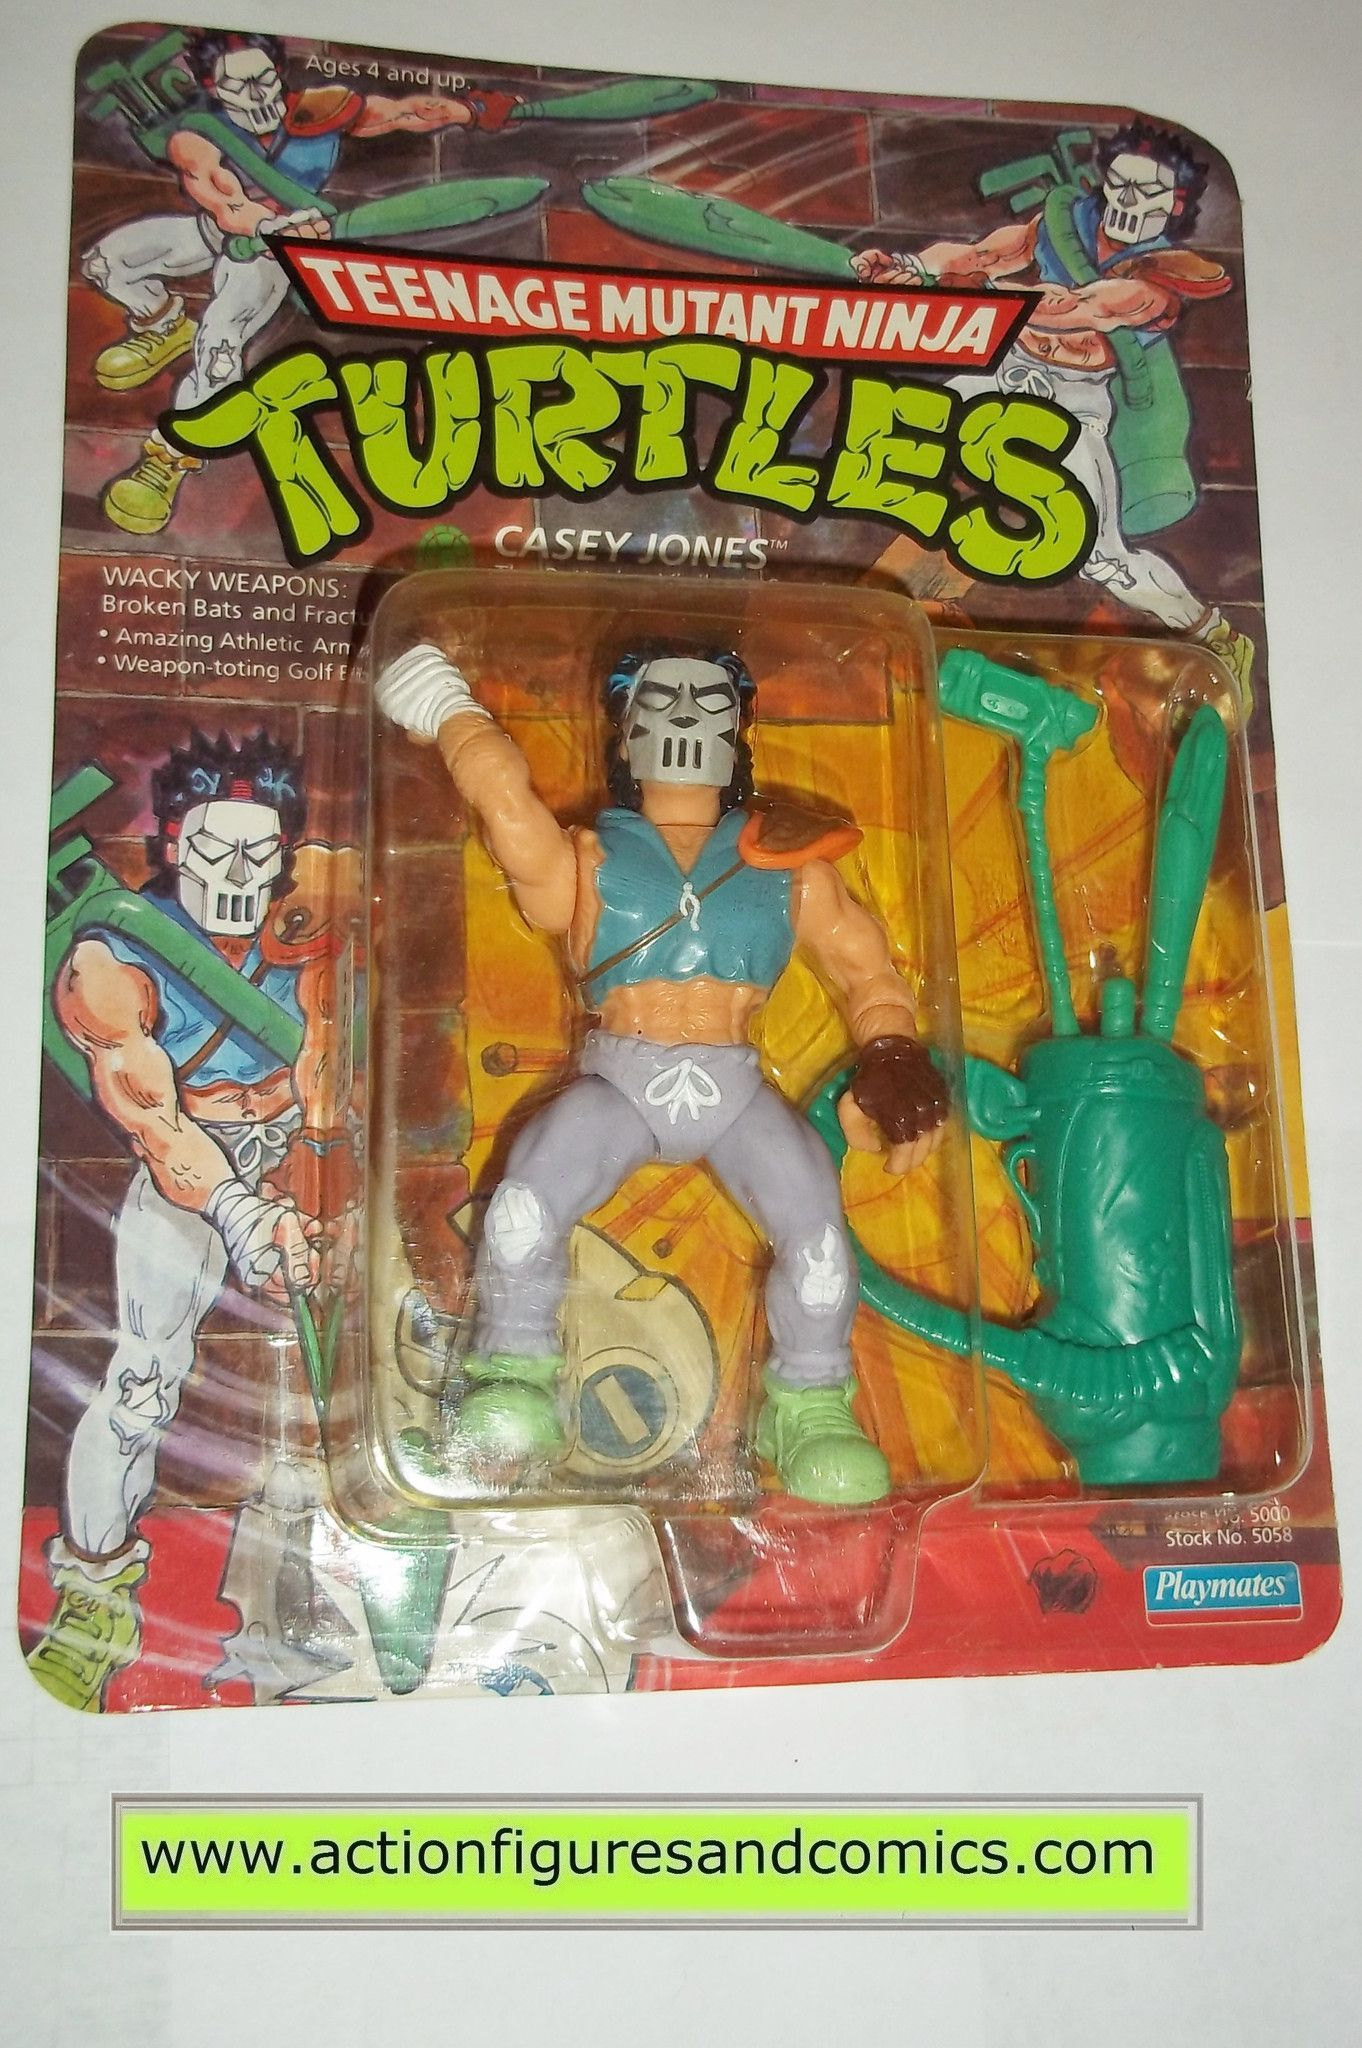 1989 Original *** Casey Jones 1 *** Teenage Mutant Ninja Turtles Tmnt